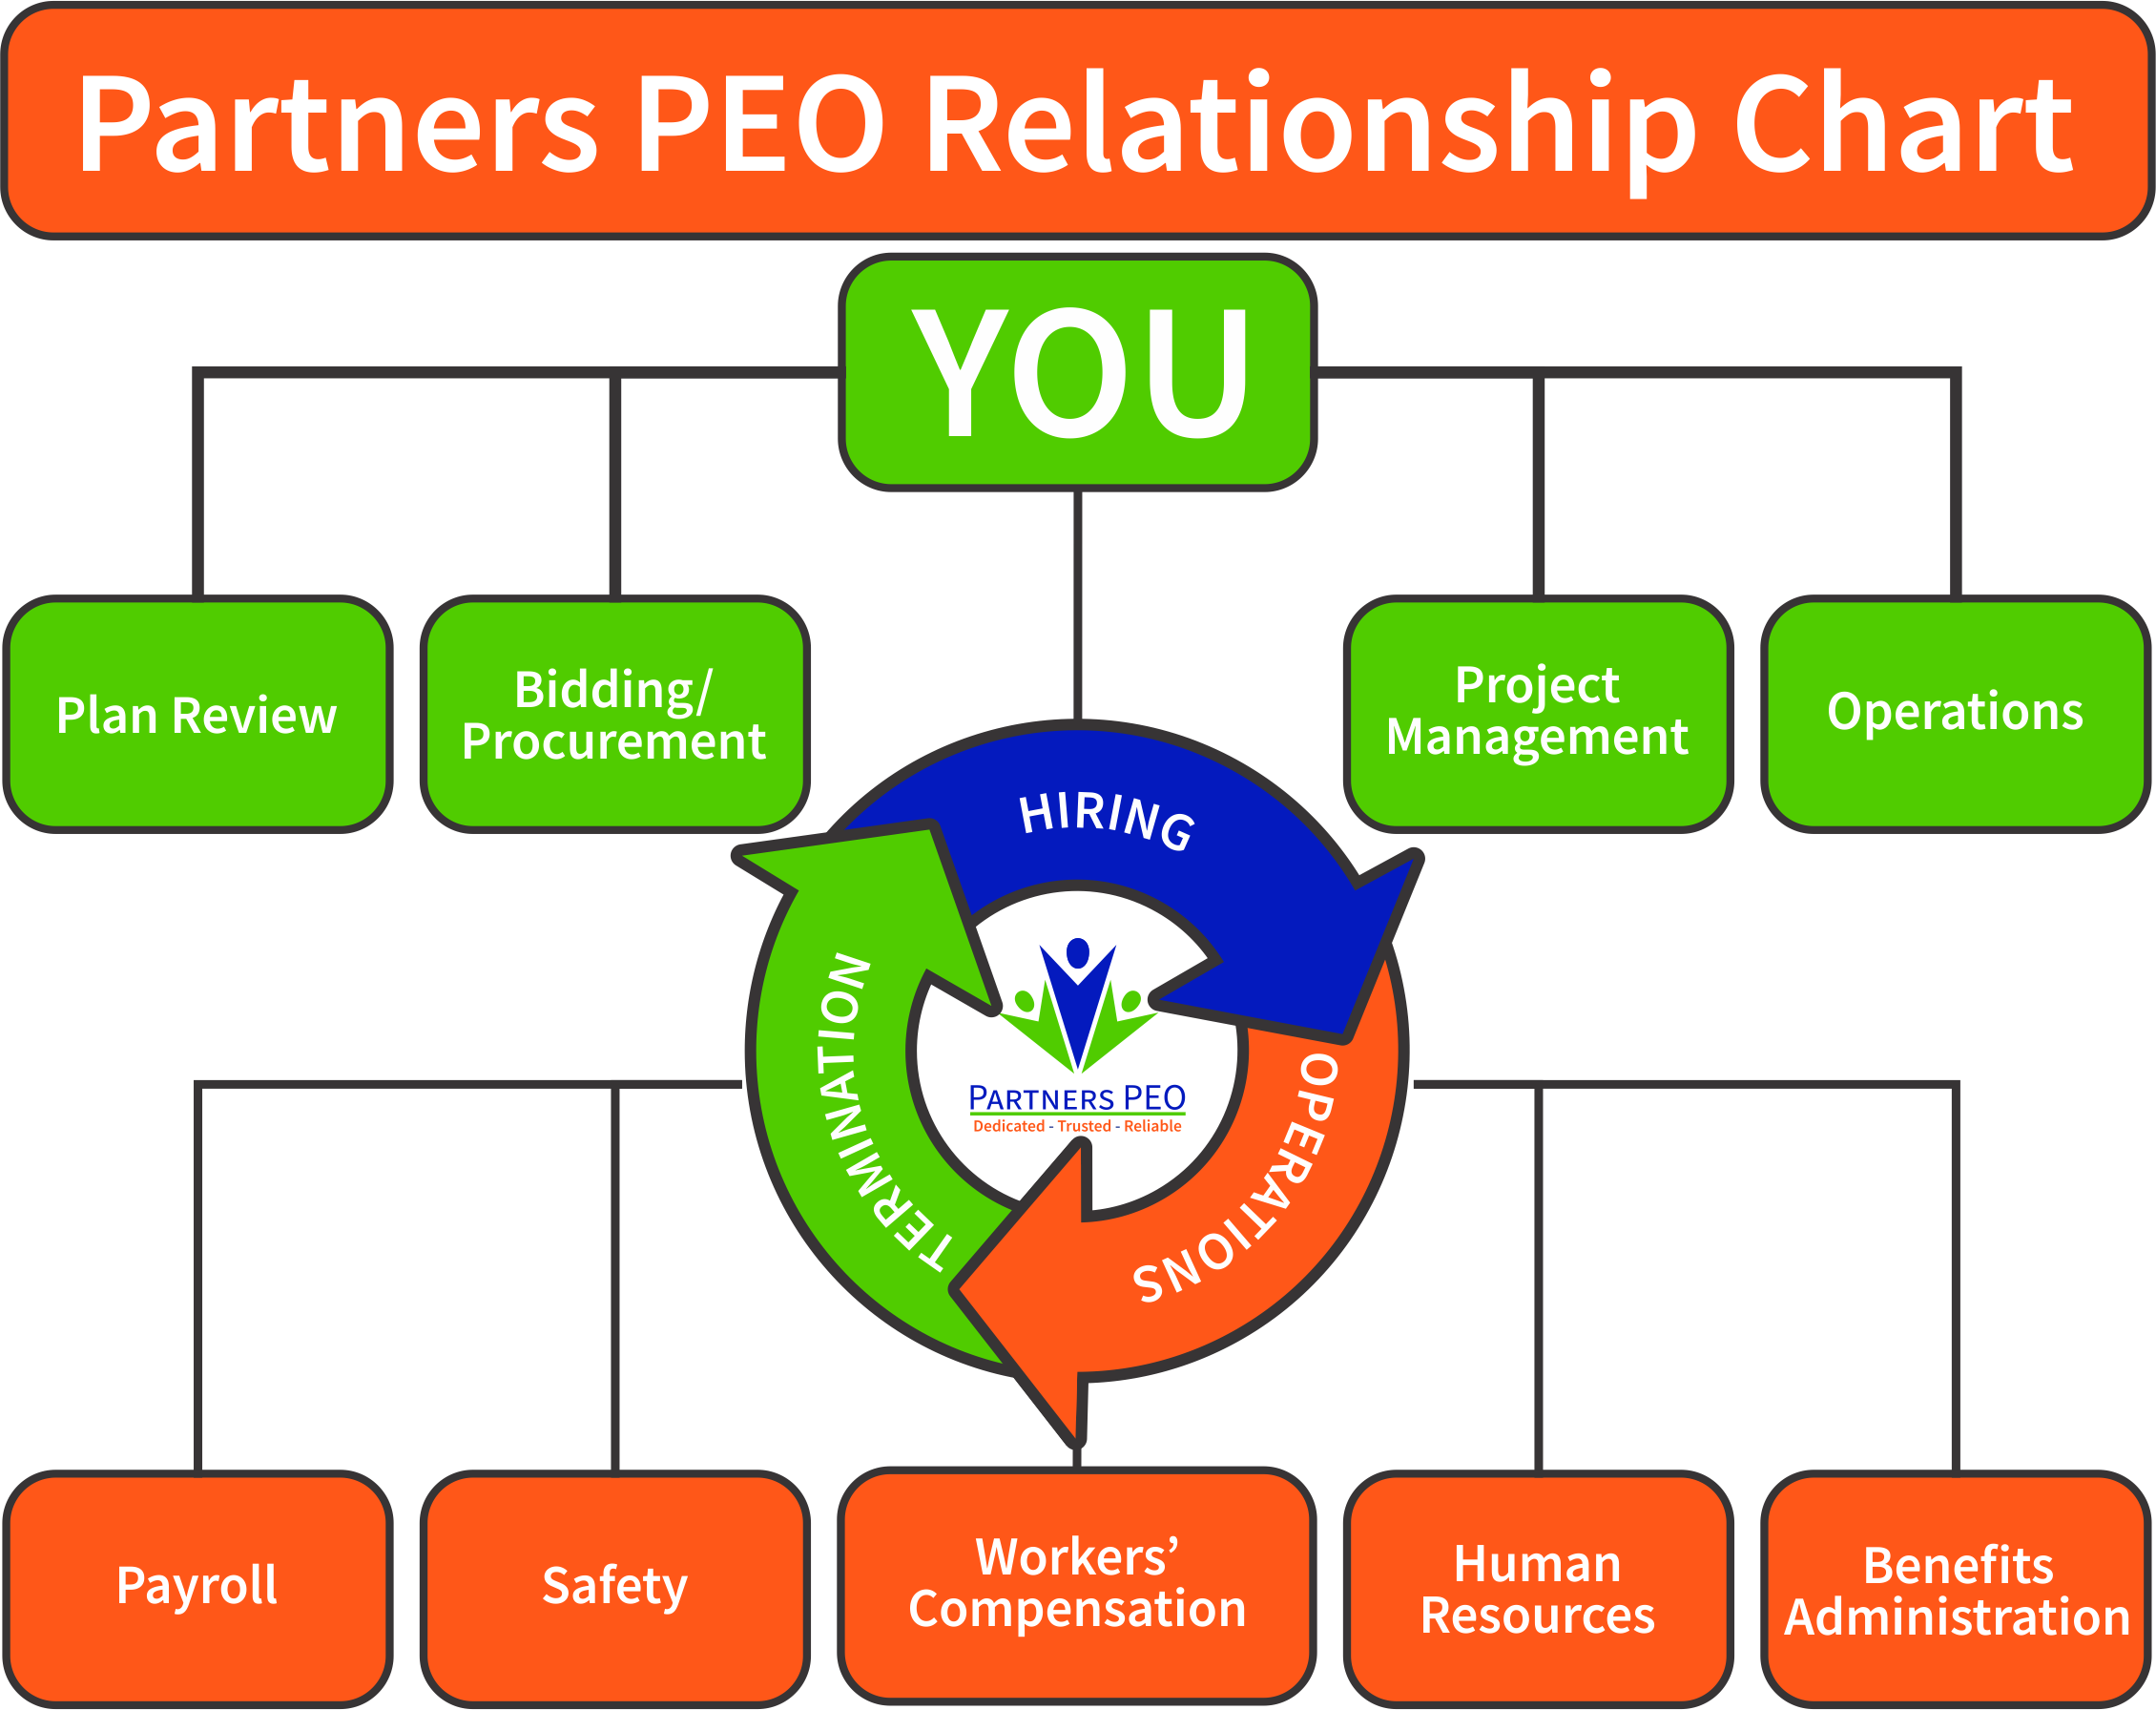 [image of Partners PEO relationship chart]